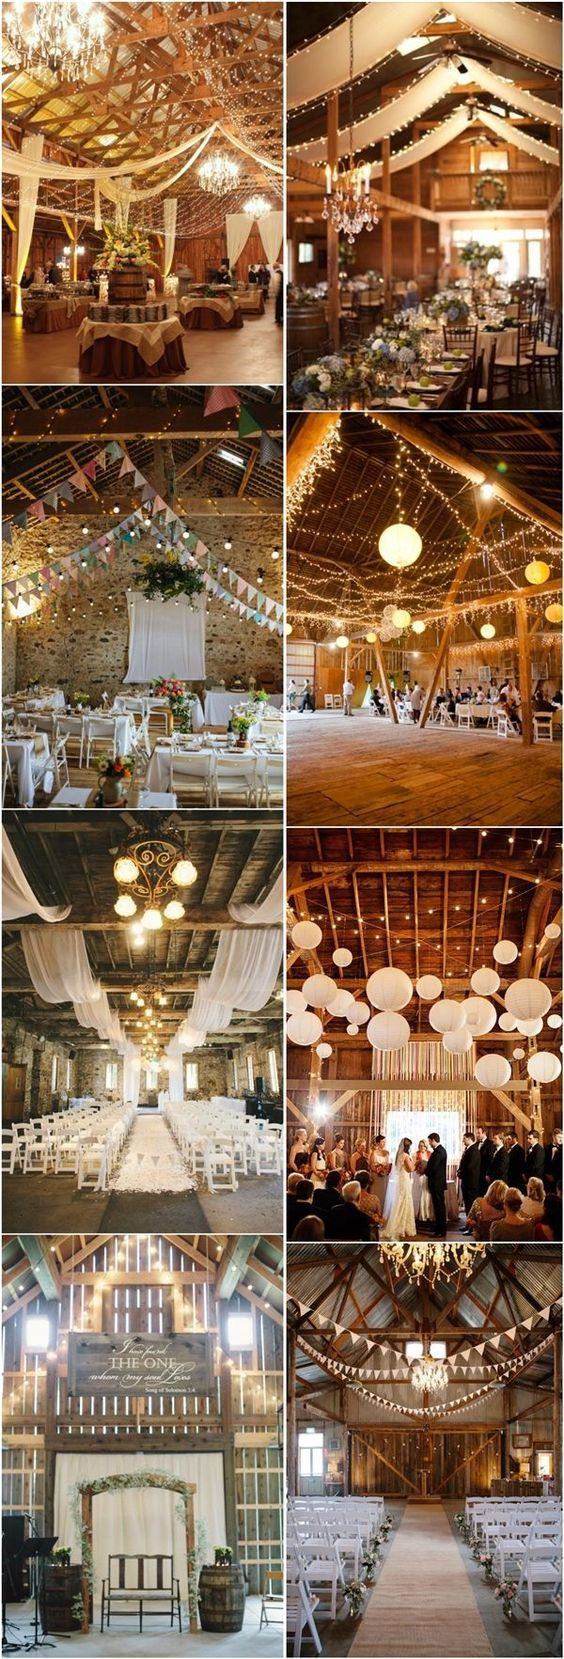 Majestic 50+ Rustic Country Wedding Inspiration https://fazhion.co/2017/06/23/50-rustic-country-wedding-inspiration/ There are a lot of things to think about, obviously there's the venue itself, this will be based on the formality of the day not to mention the theme you have selected.